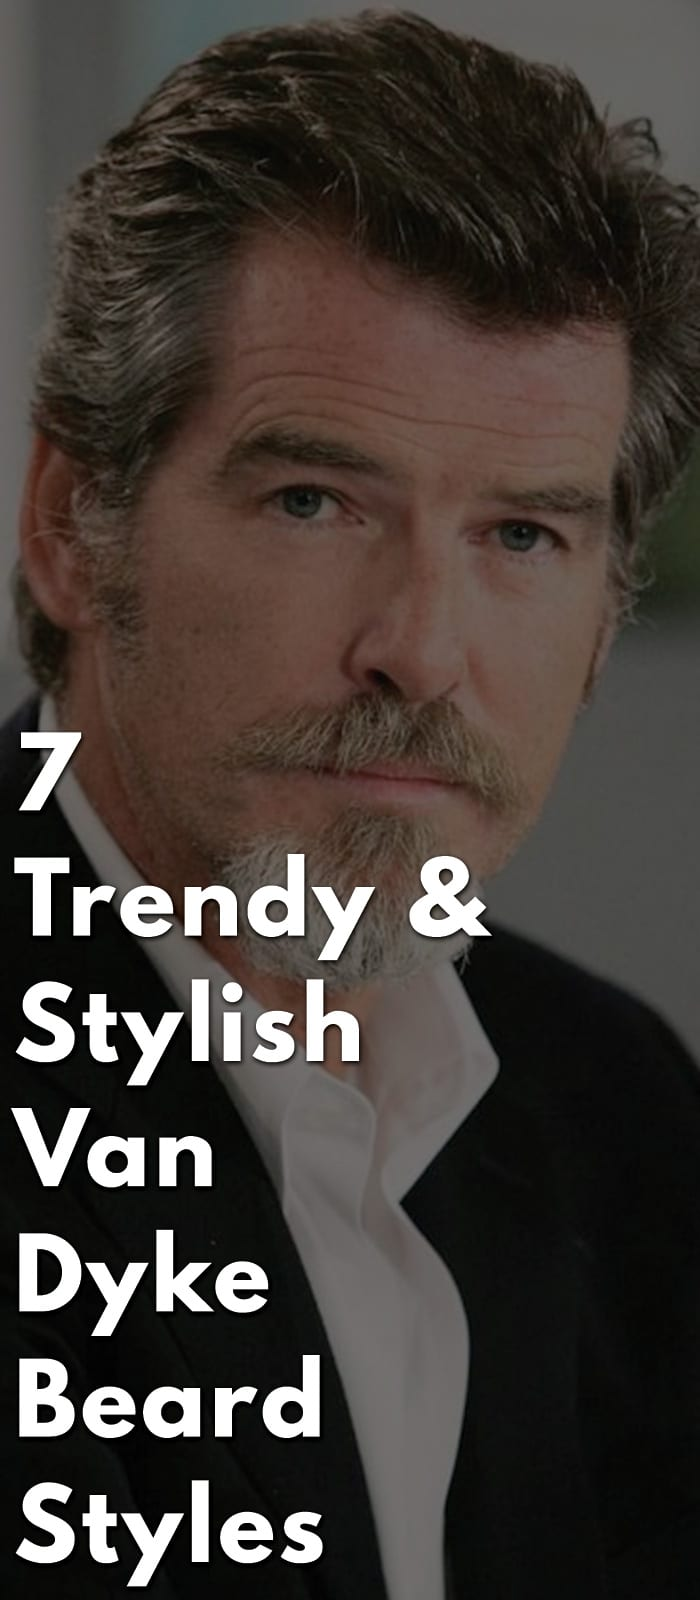 7-Trendy-&-Stylish-Van-Dyke-Beard-Styles